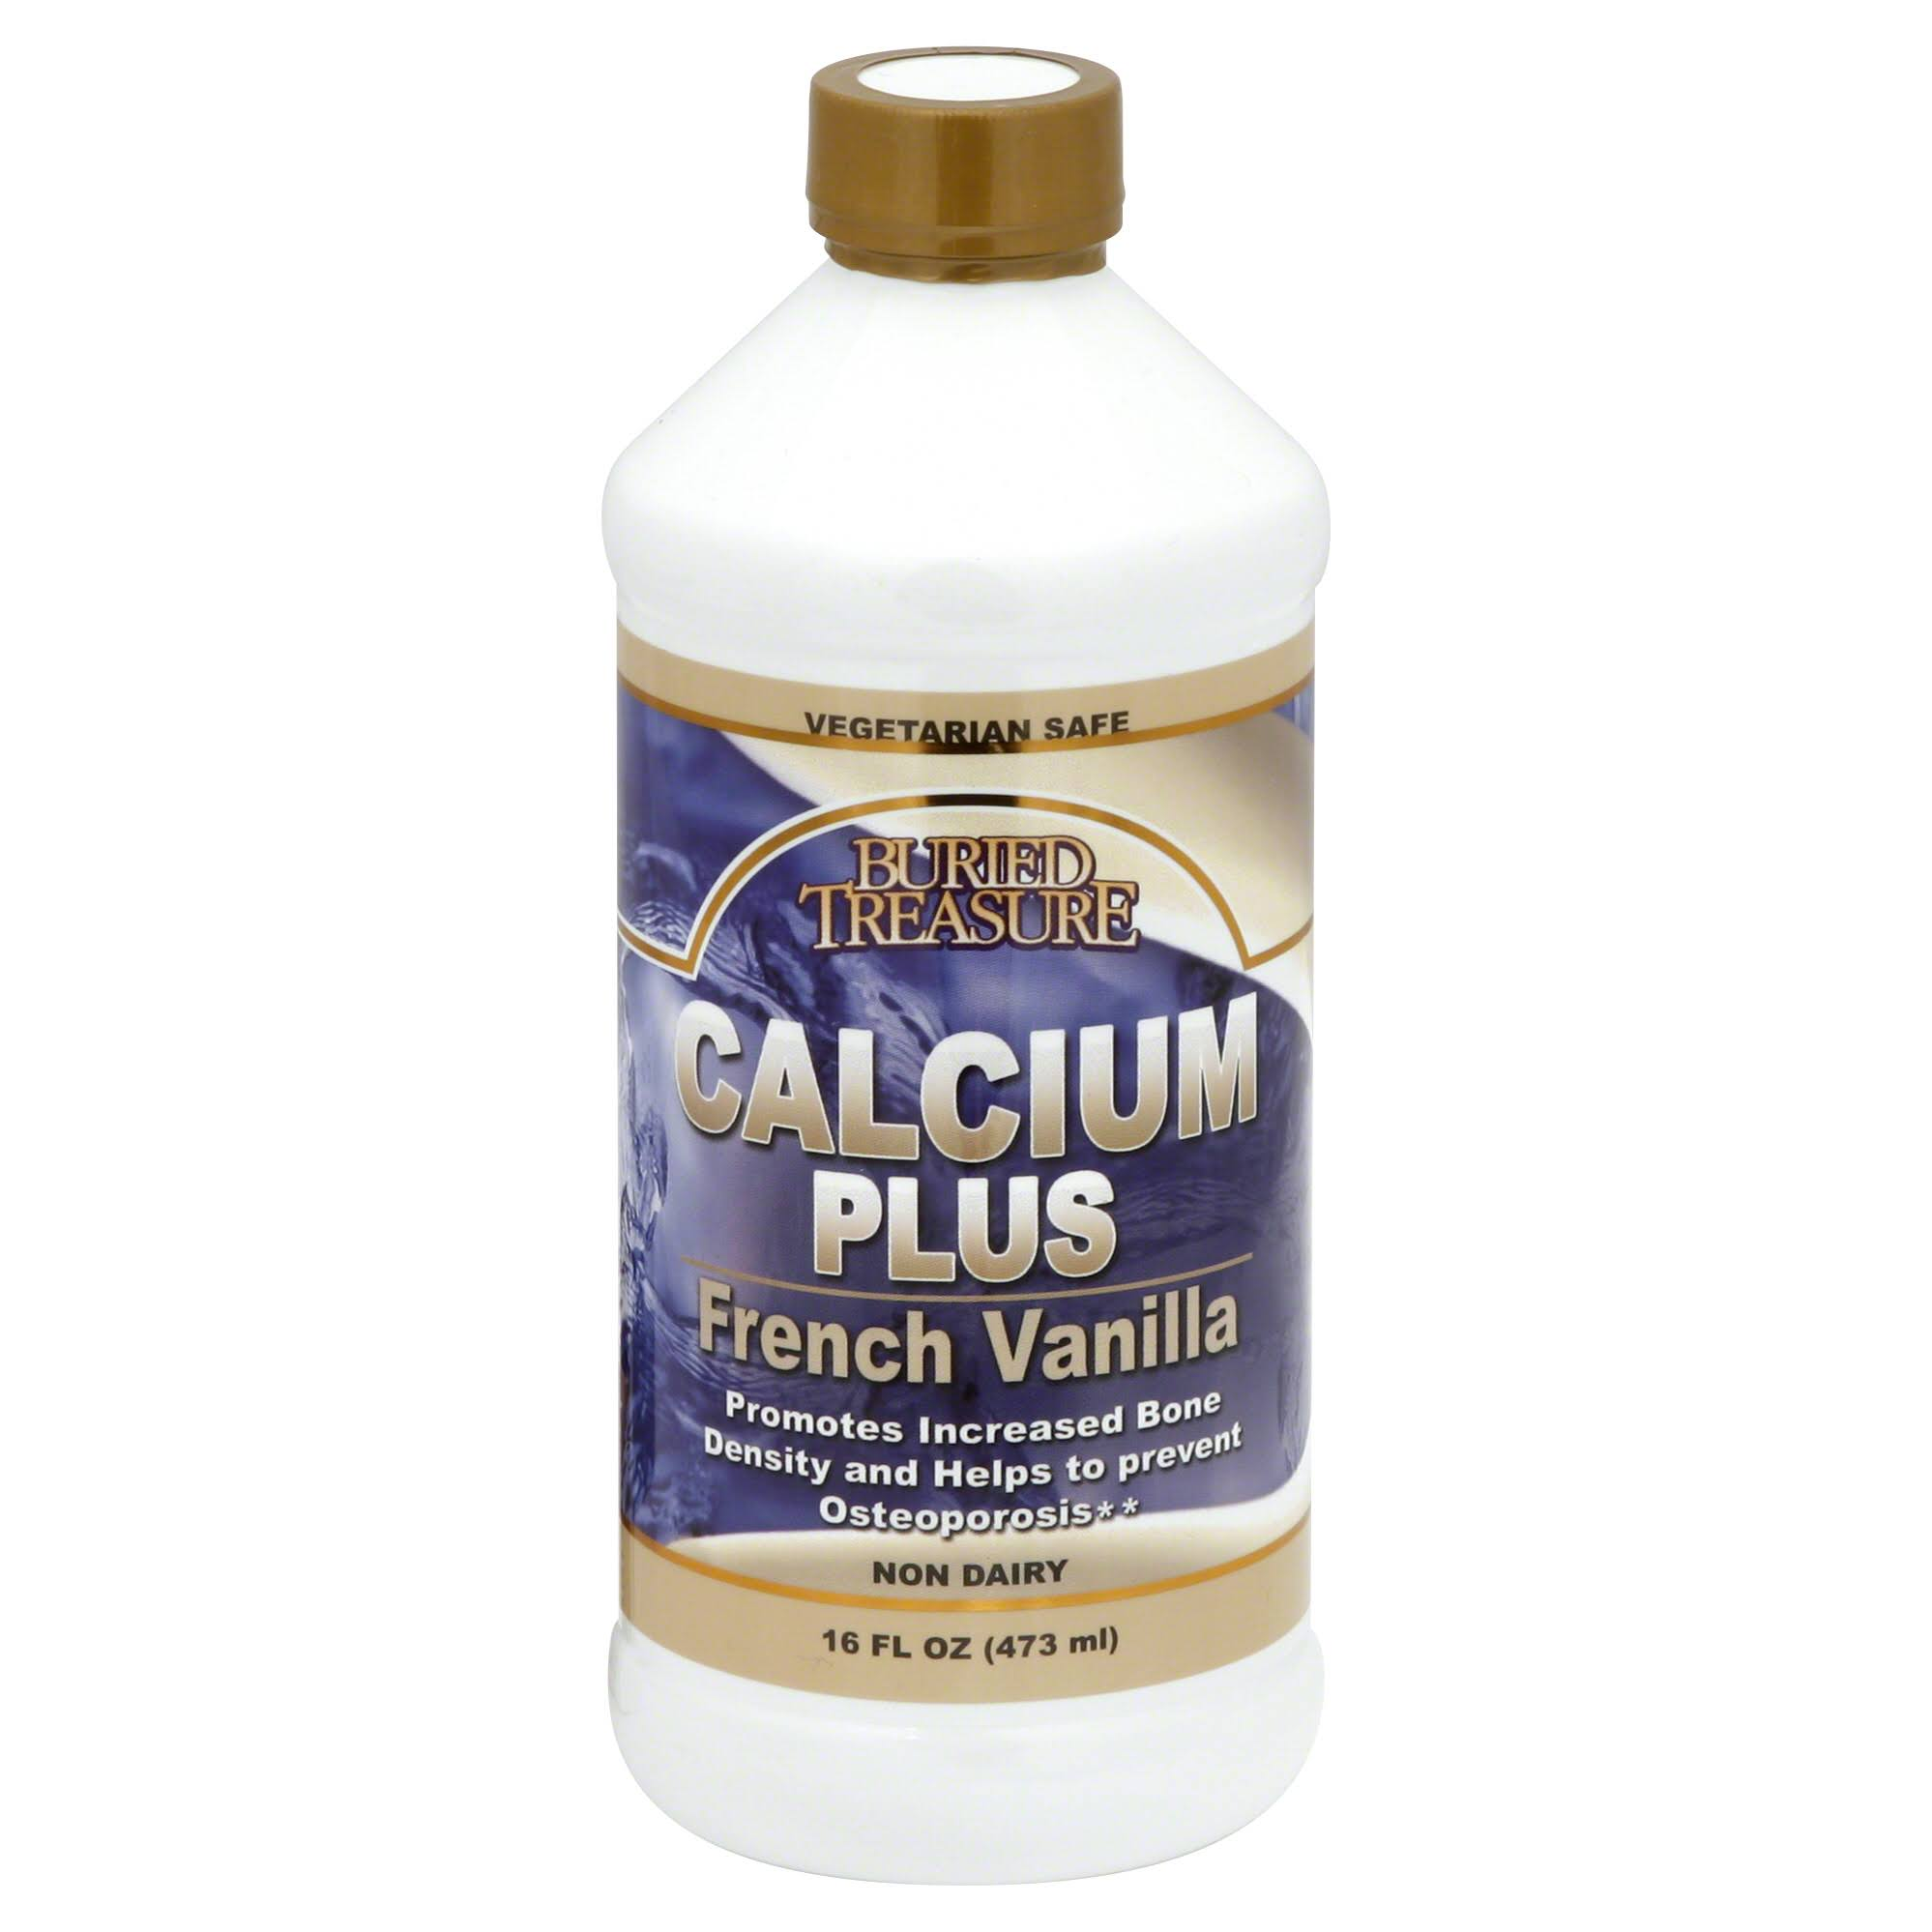 Buried Treasure Calcium Plus - French Vanilla, 473ml